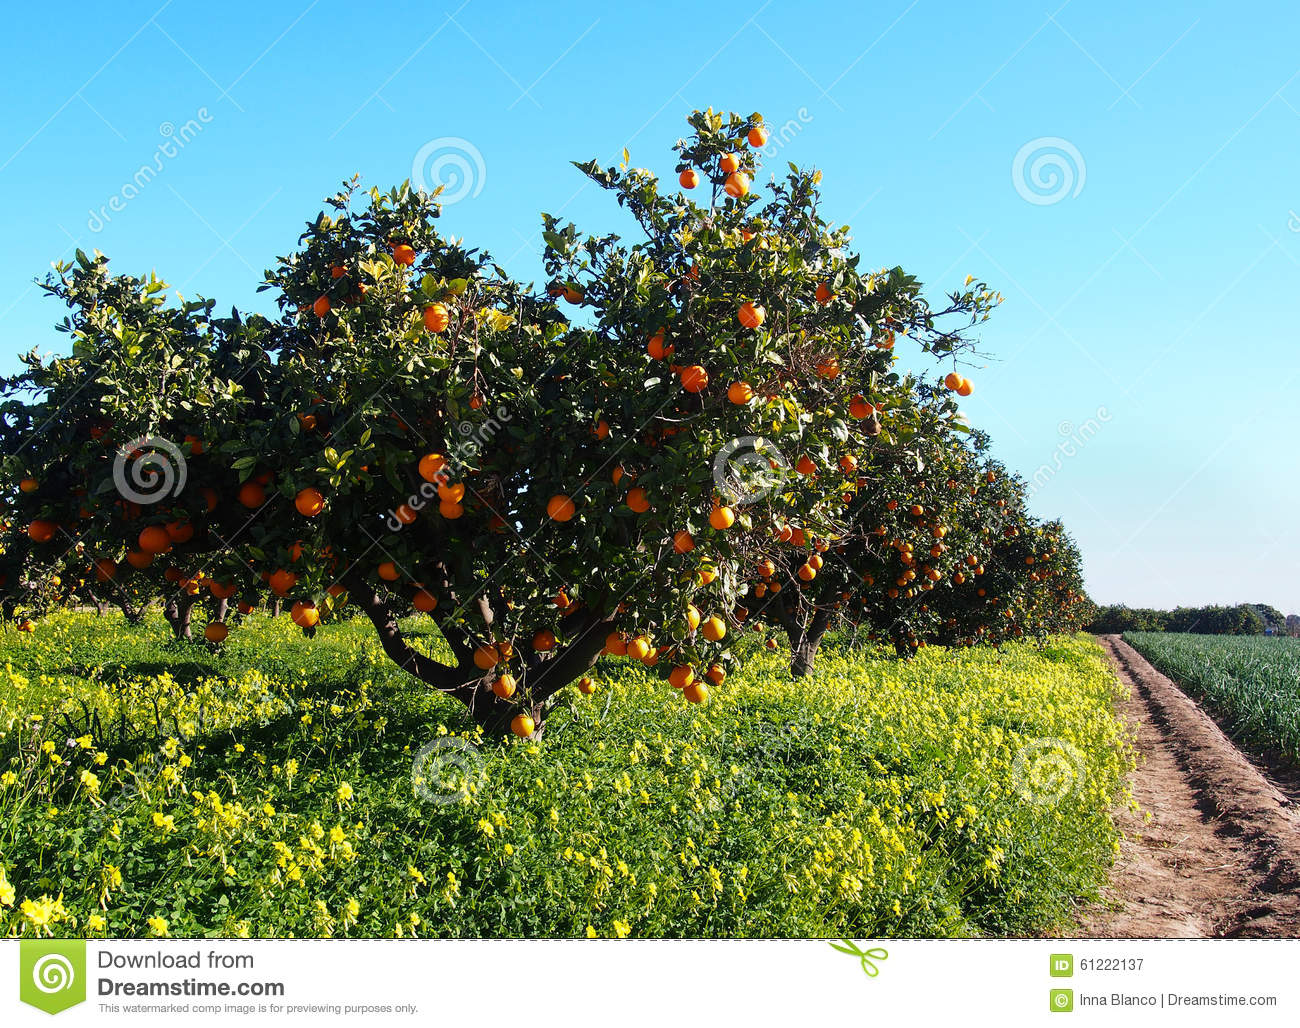 Jardin d 39 arbres oranges avec beaucoup de fruits photo for Les arbres du jardin